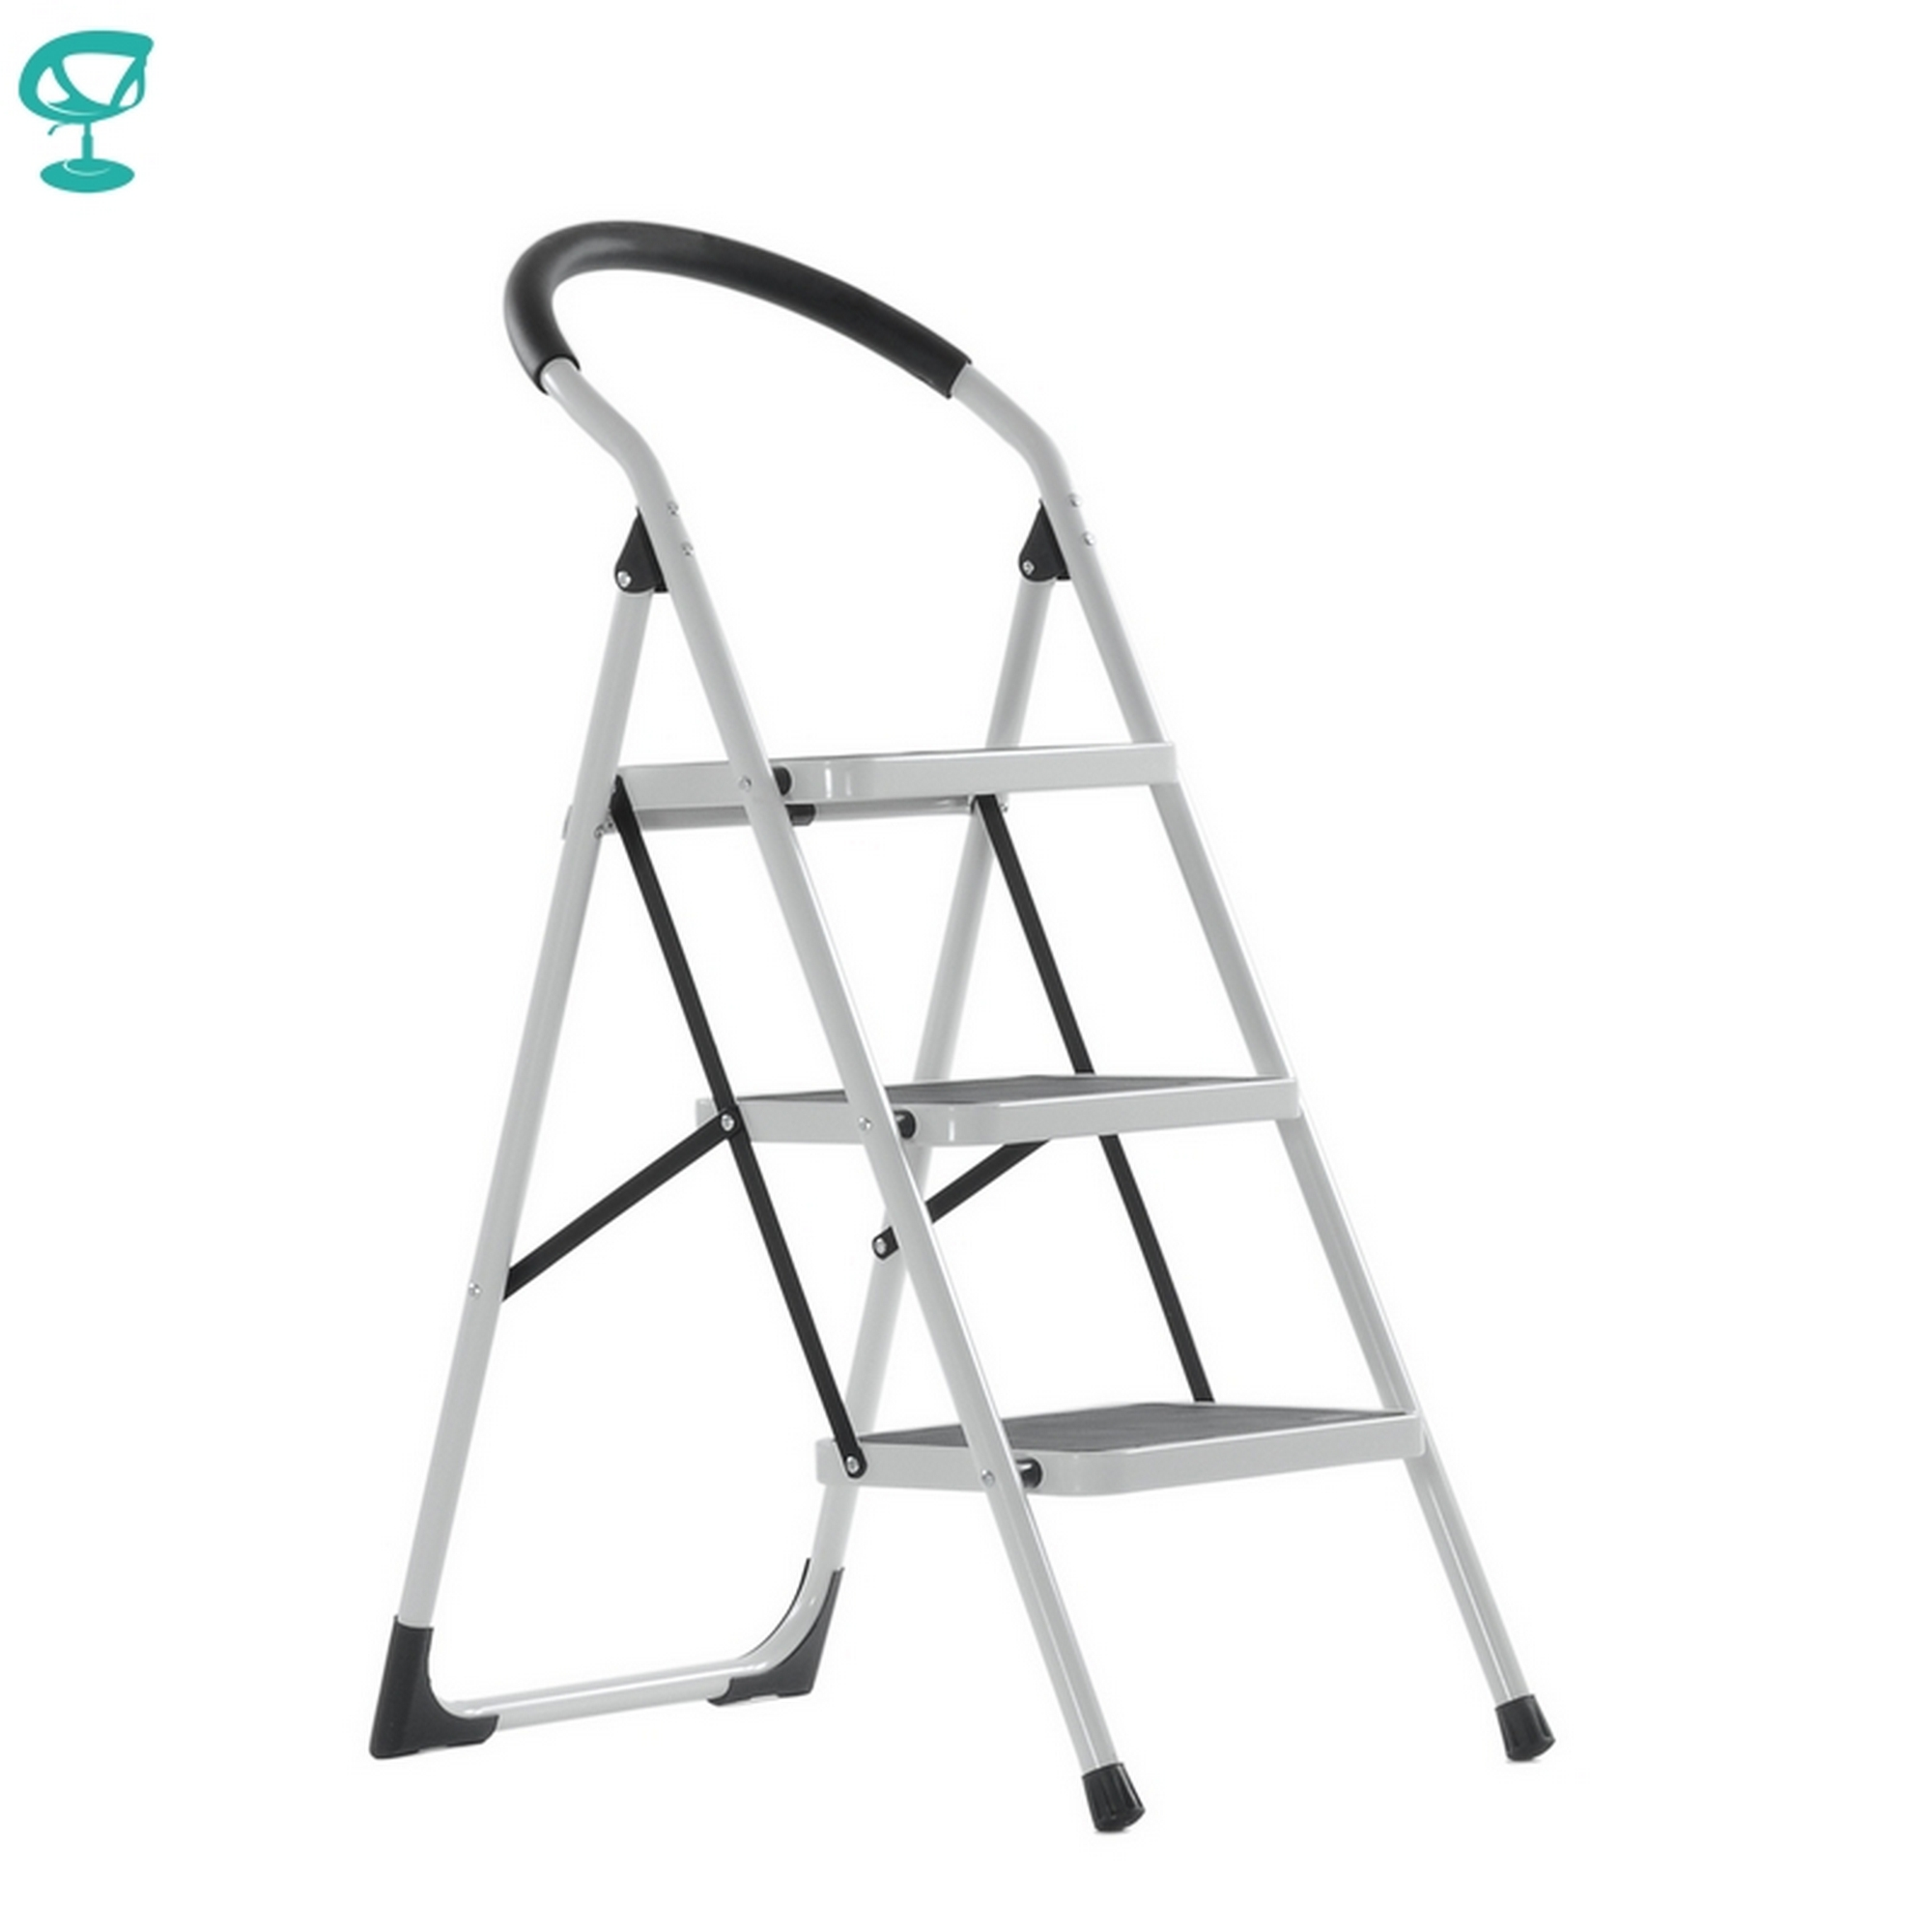 95666 Barneo ST-33 Ladder Steel 3 Stage White Single Side Max Load 150 Kg Free Shipping To Russia